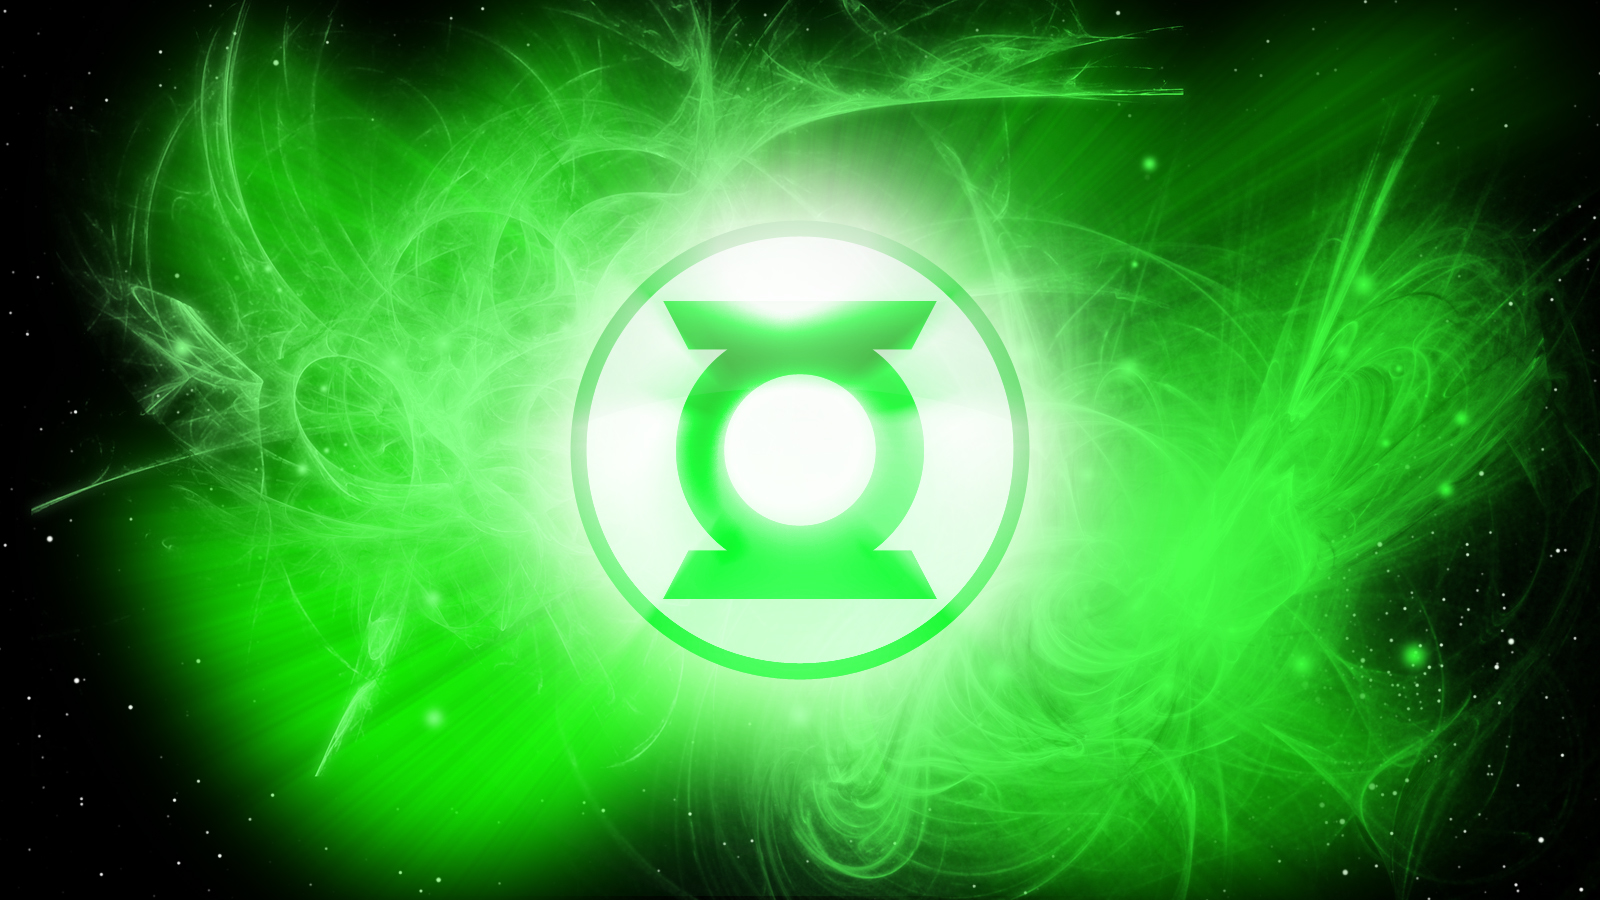 Green Lantern Wallpaper